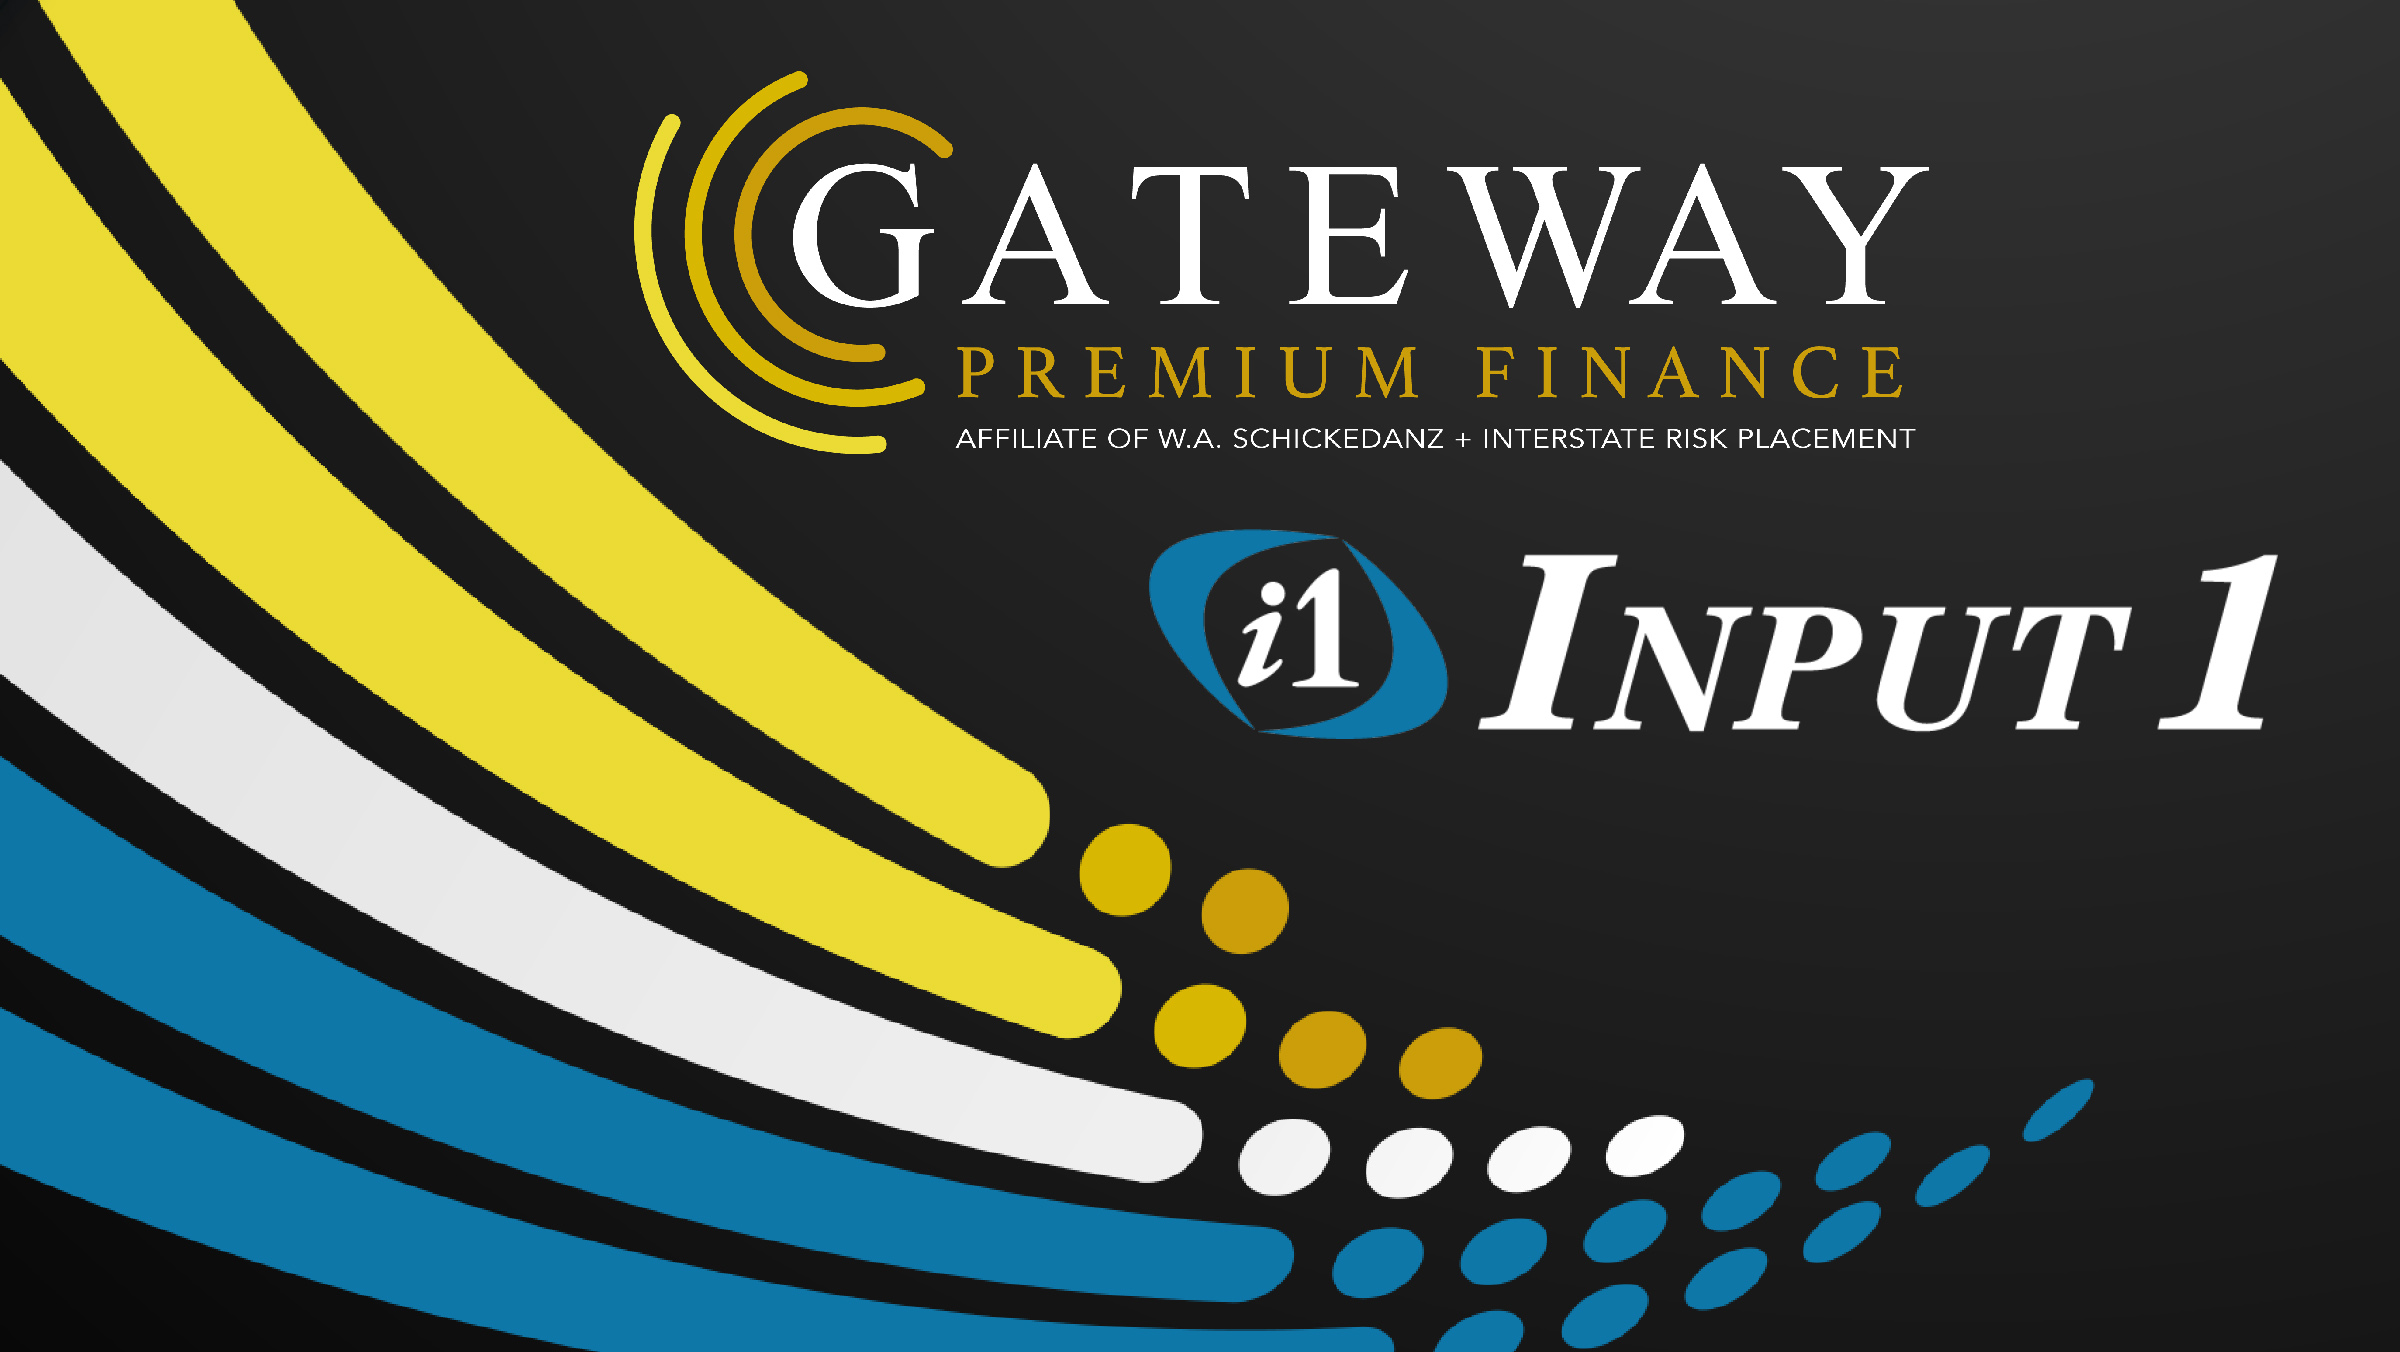 Gateway Premium Budget chooses the Input 1 cloud-based Premium Billing System for its Premium Finance Operation